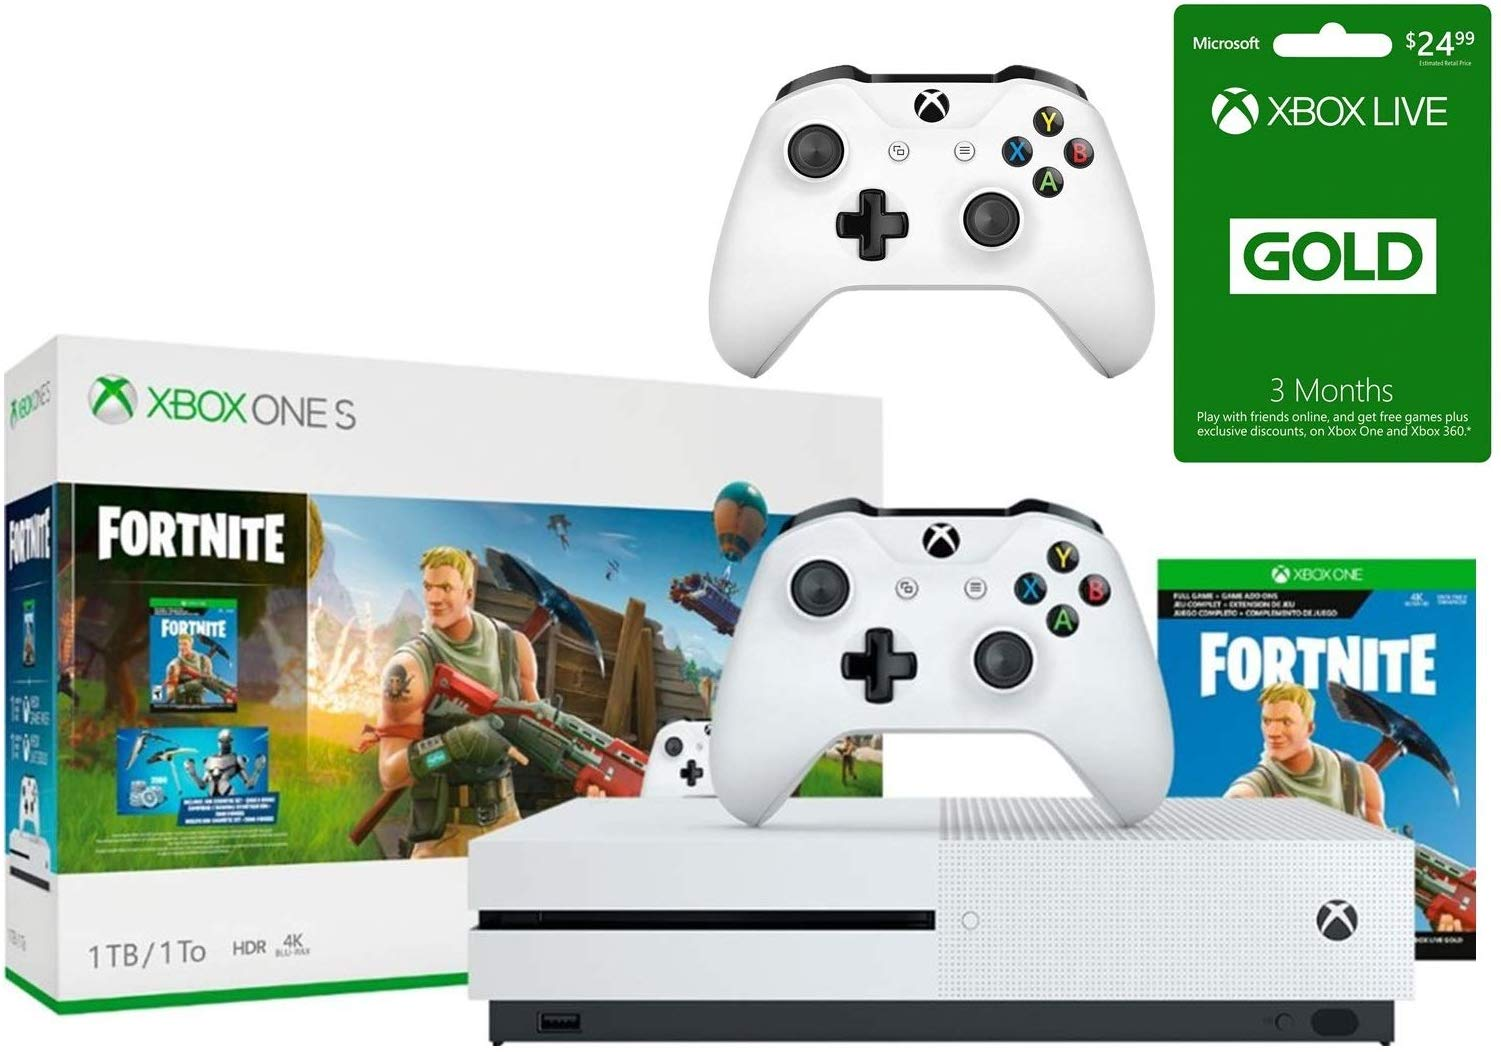 Xbox One Fornite Console Bundle Giveaway Image